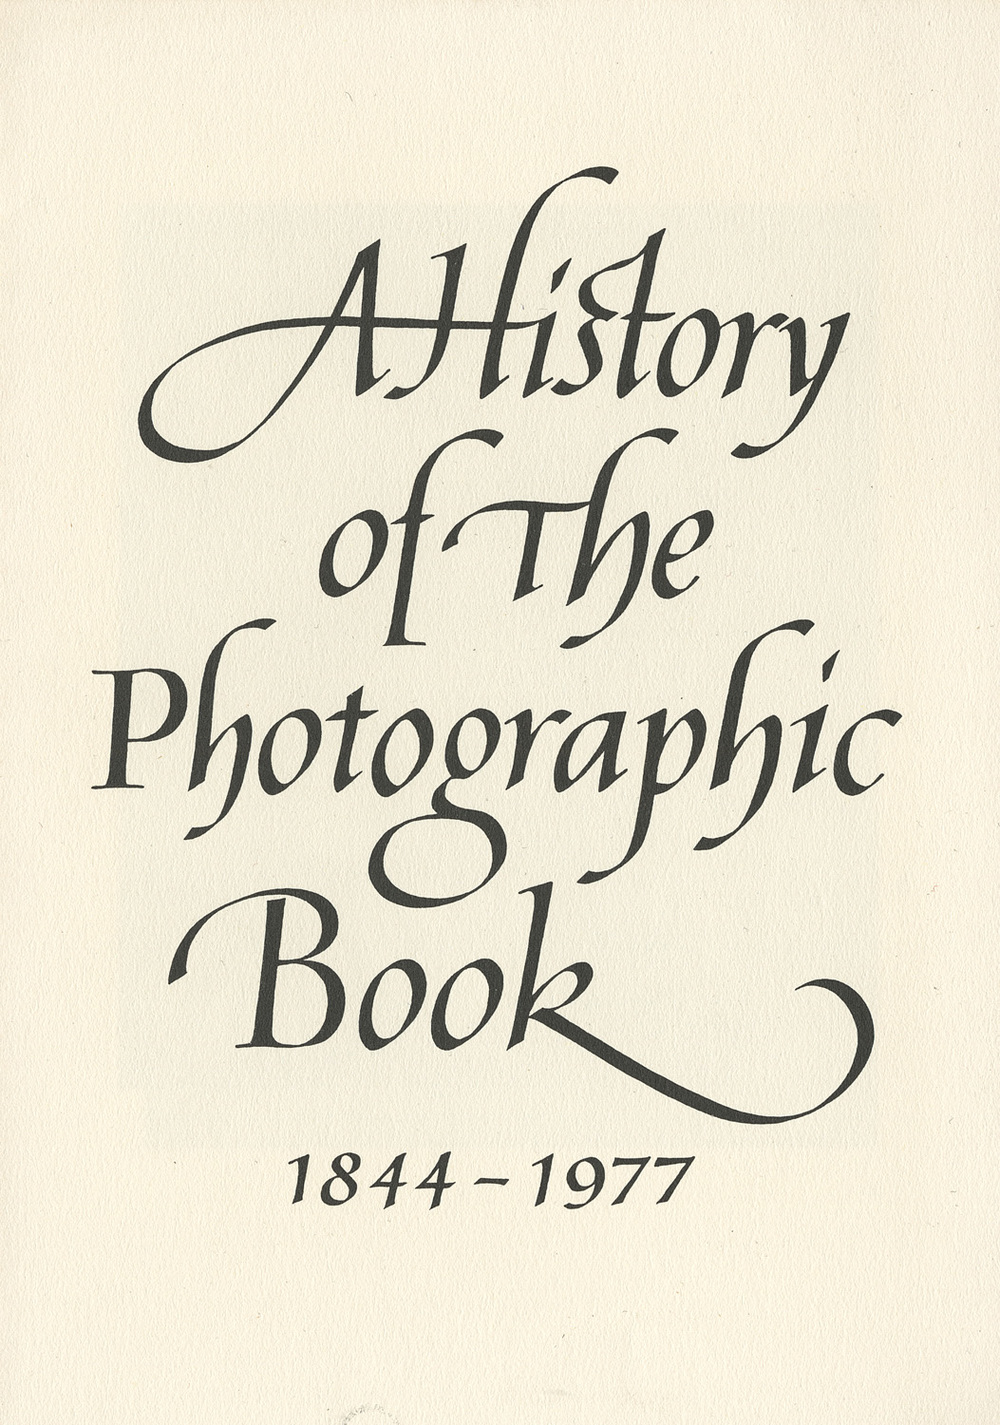 A History of The Photographic Book 1844-1977 , a talk by Lance Hidy given at The Stinehour Press in 1977. Calligraphy by Stephen Harvard.